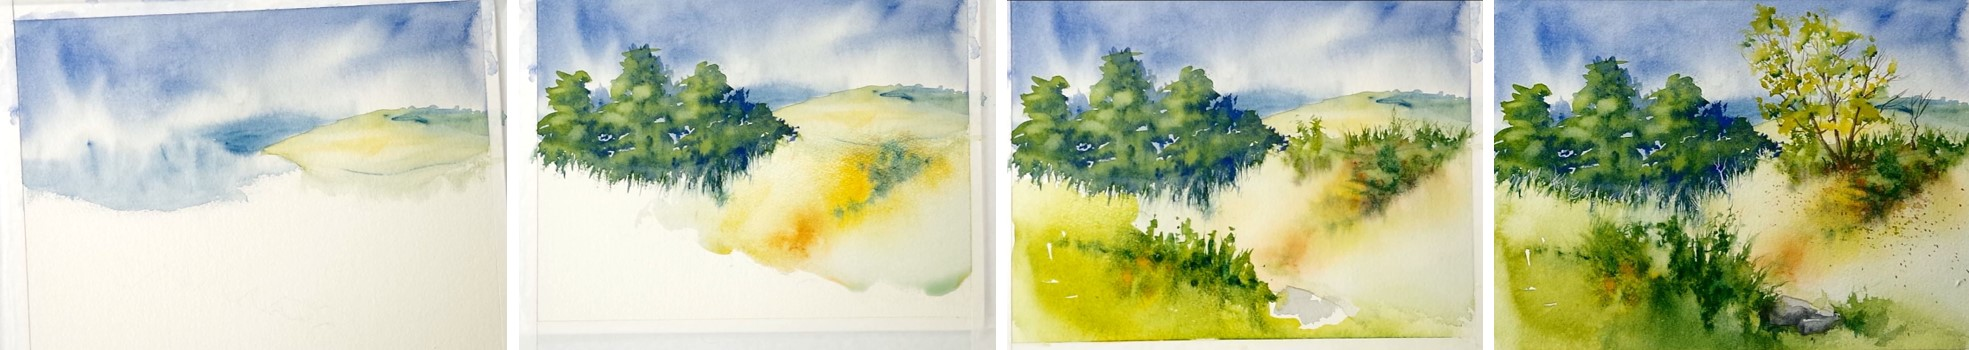 7 Watercolor Tips For Beginners Strathmore Artist Papers